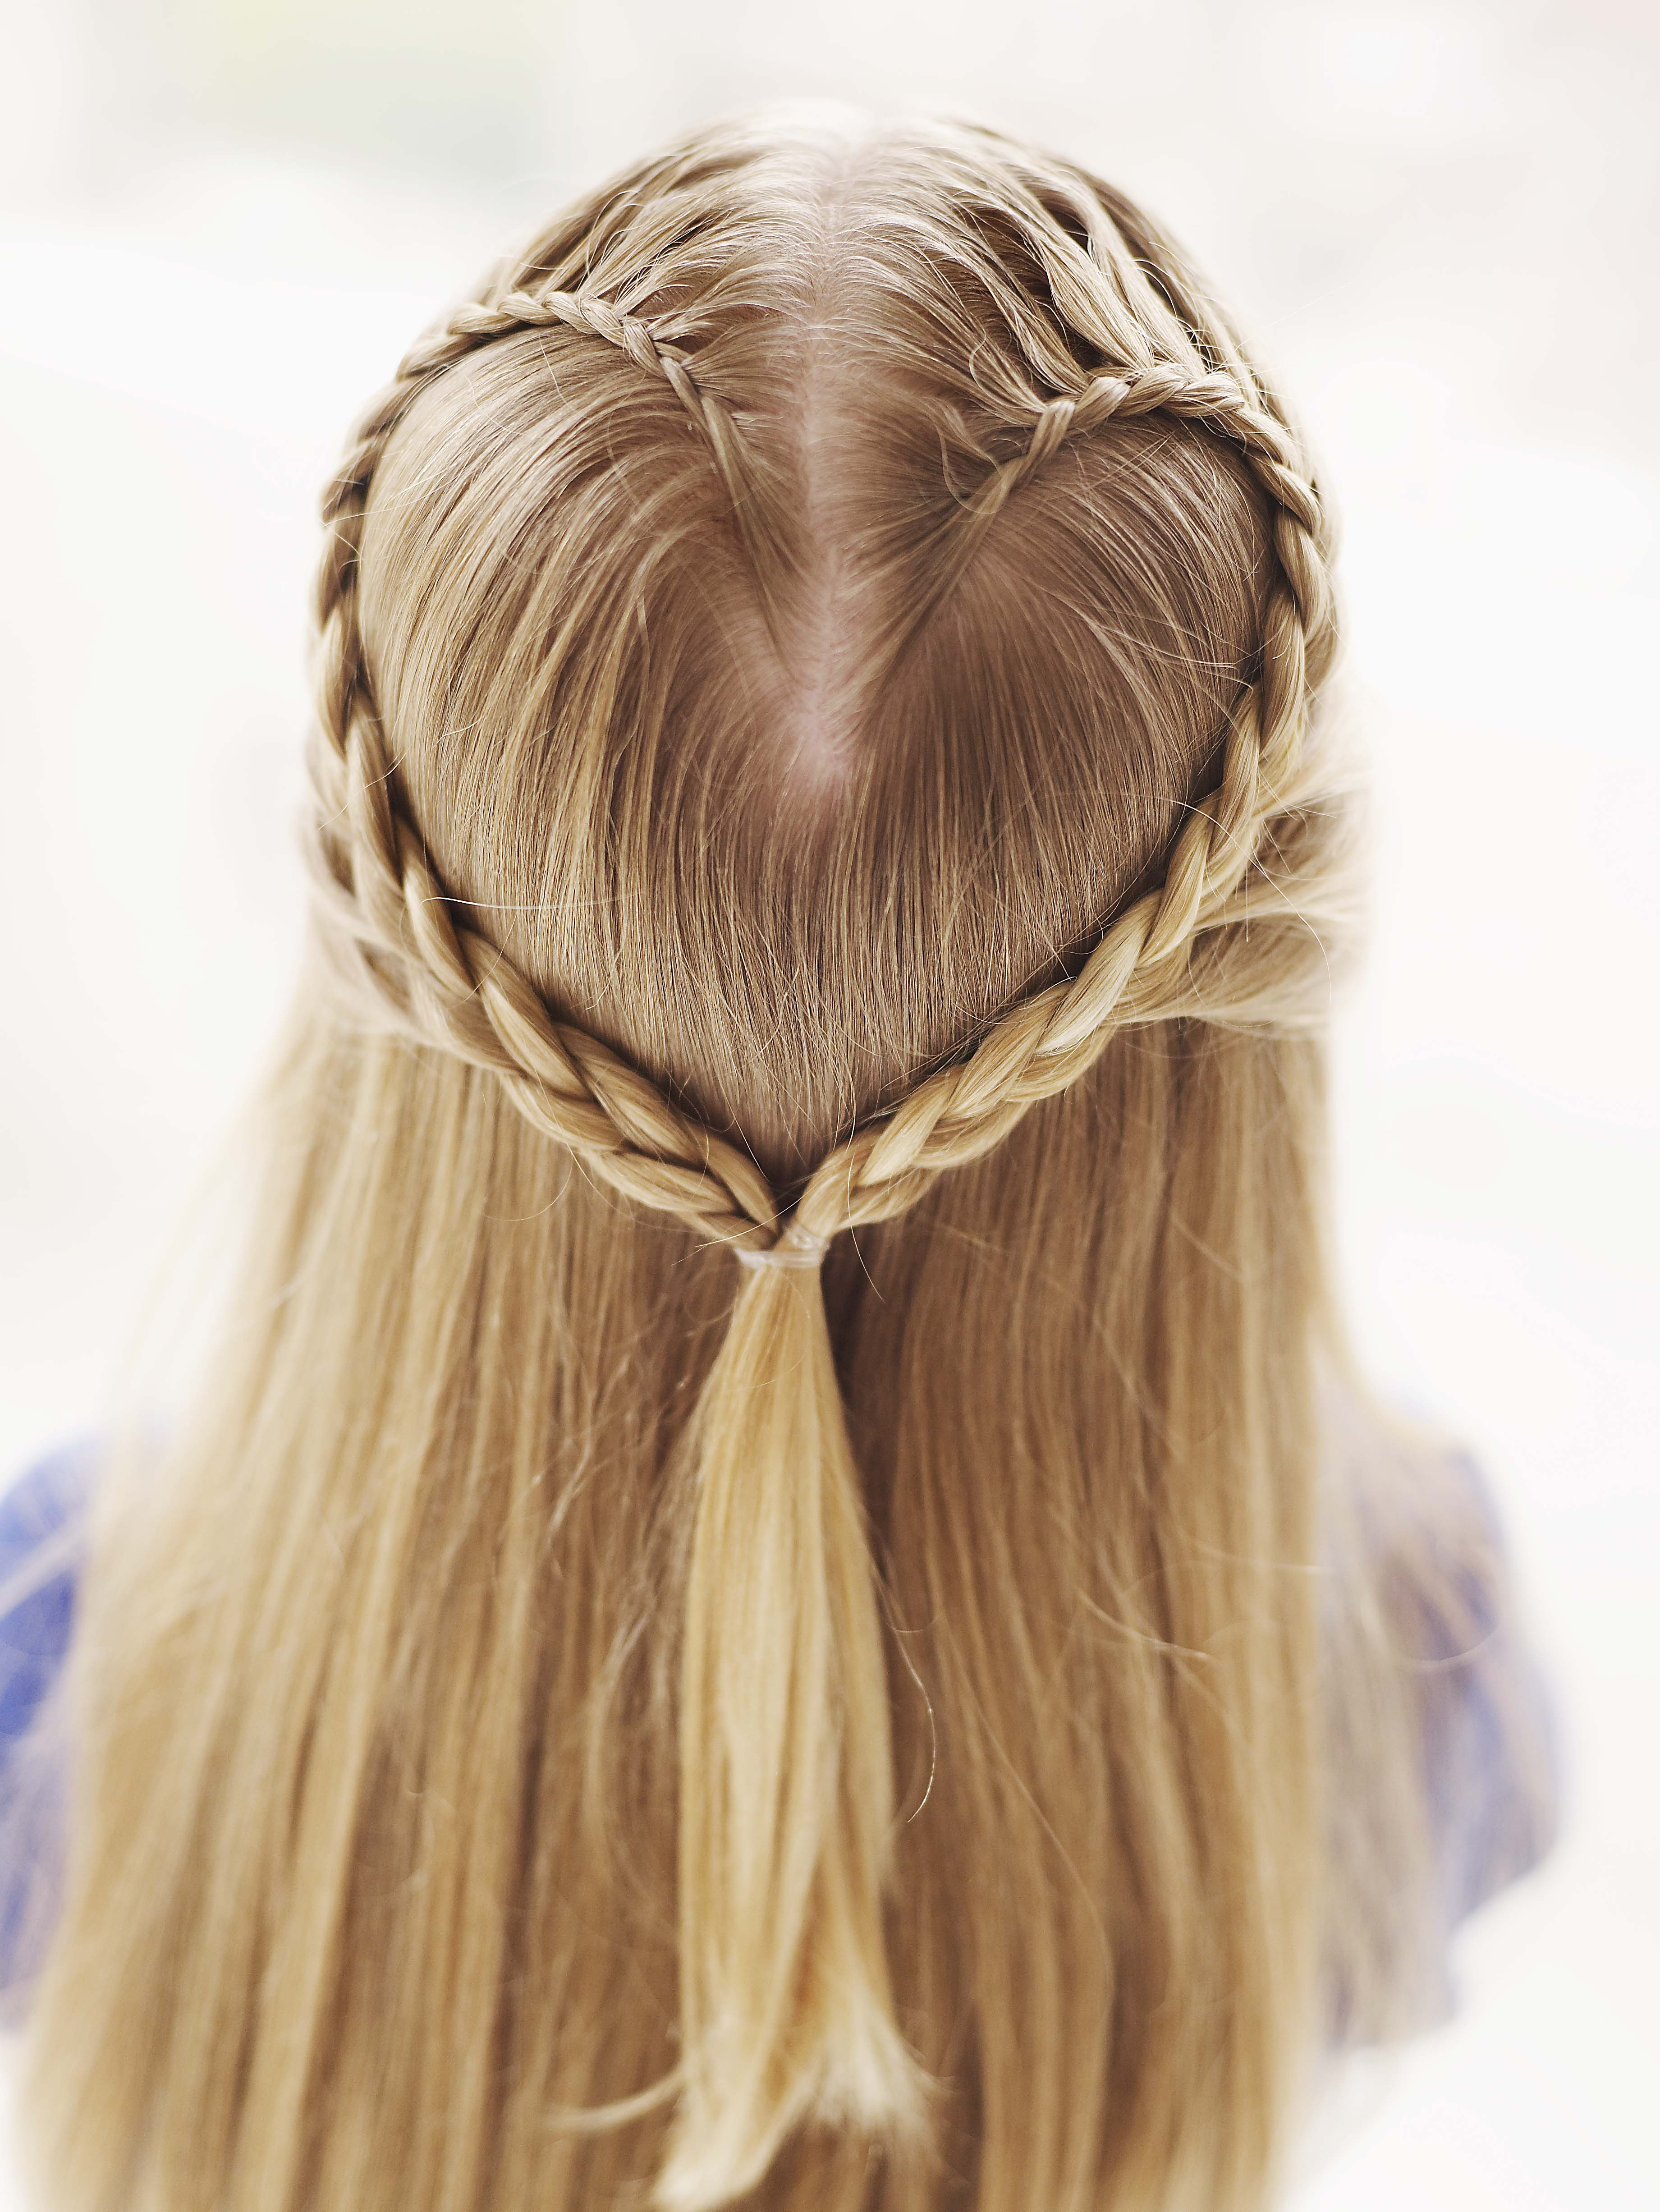 97 braided hairstyles for long hair tumblr 10 easy cute